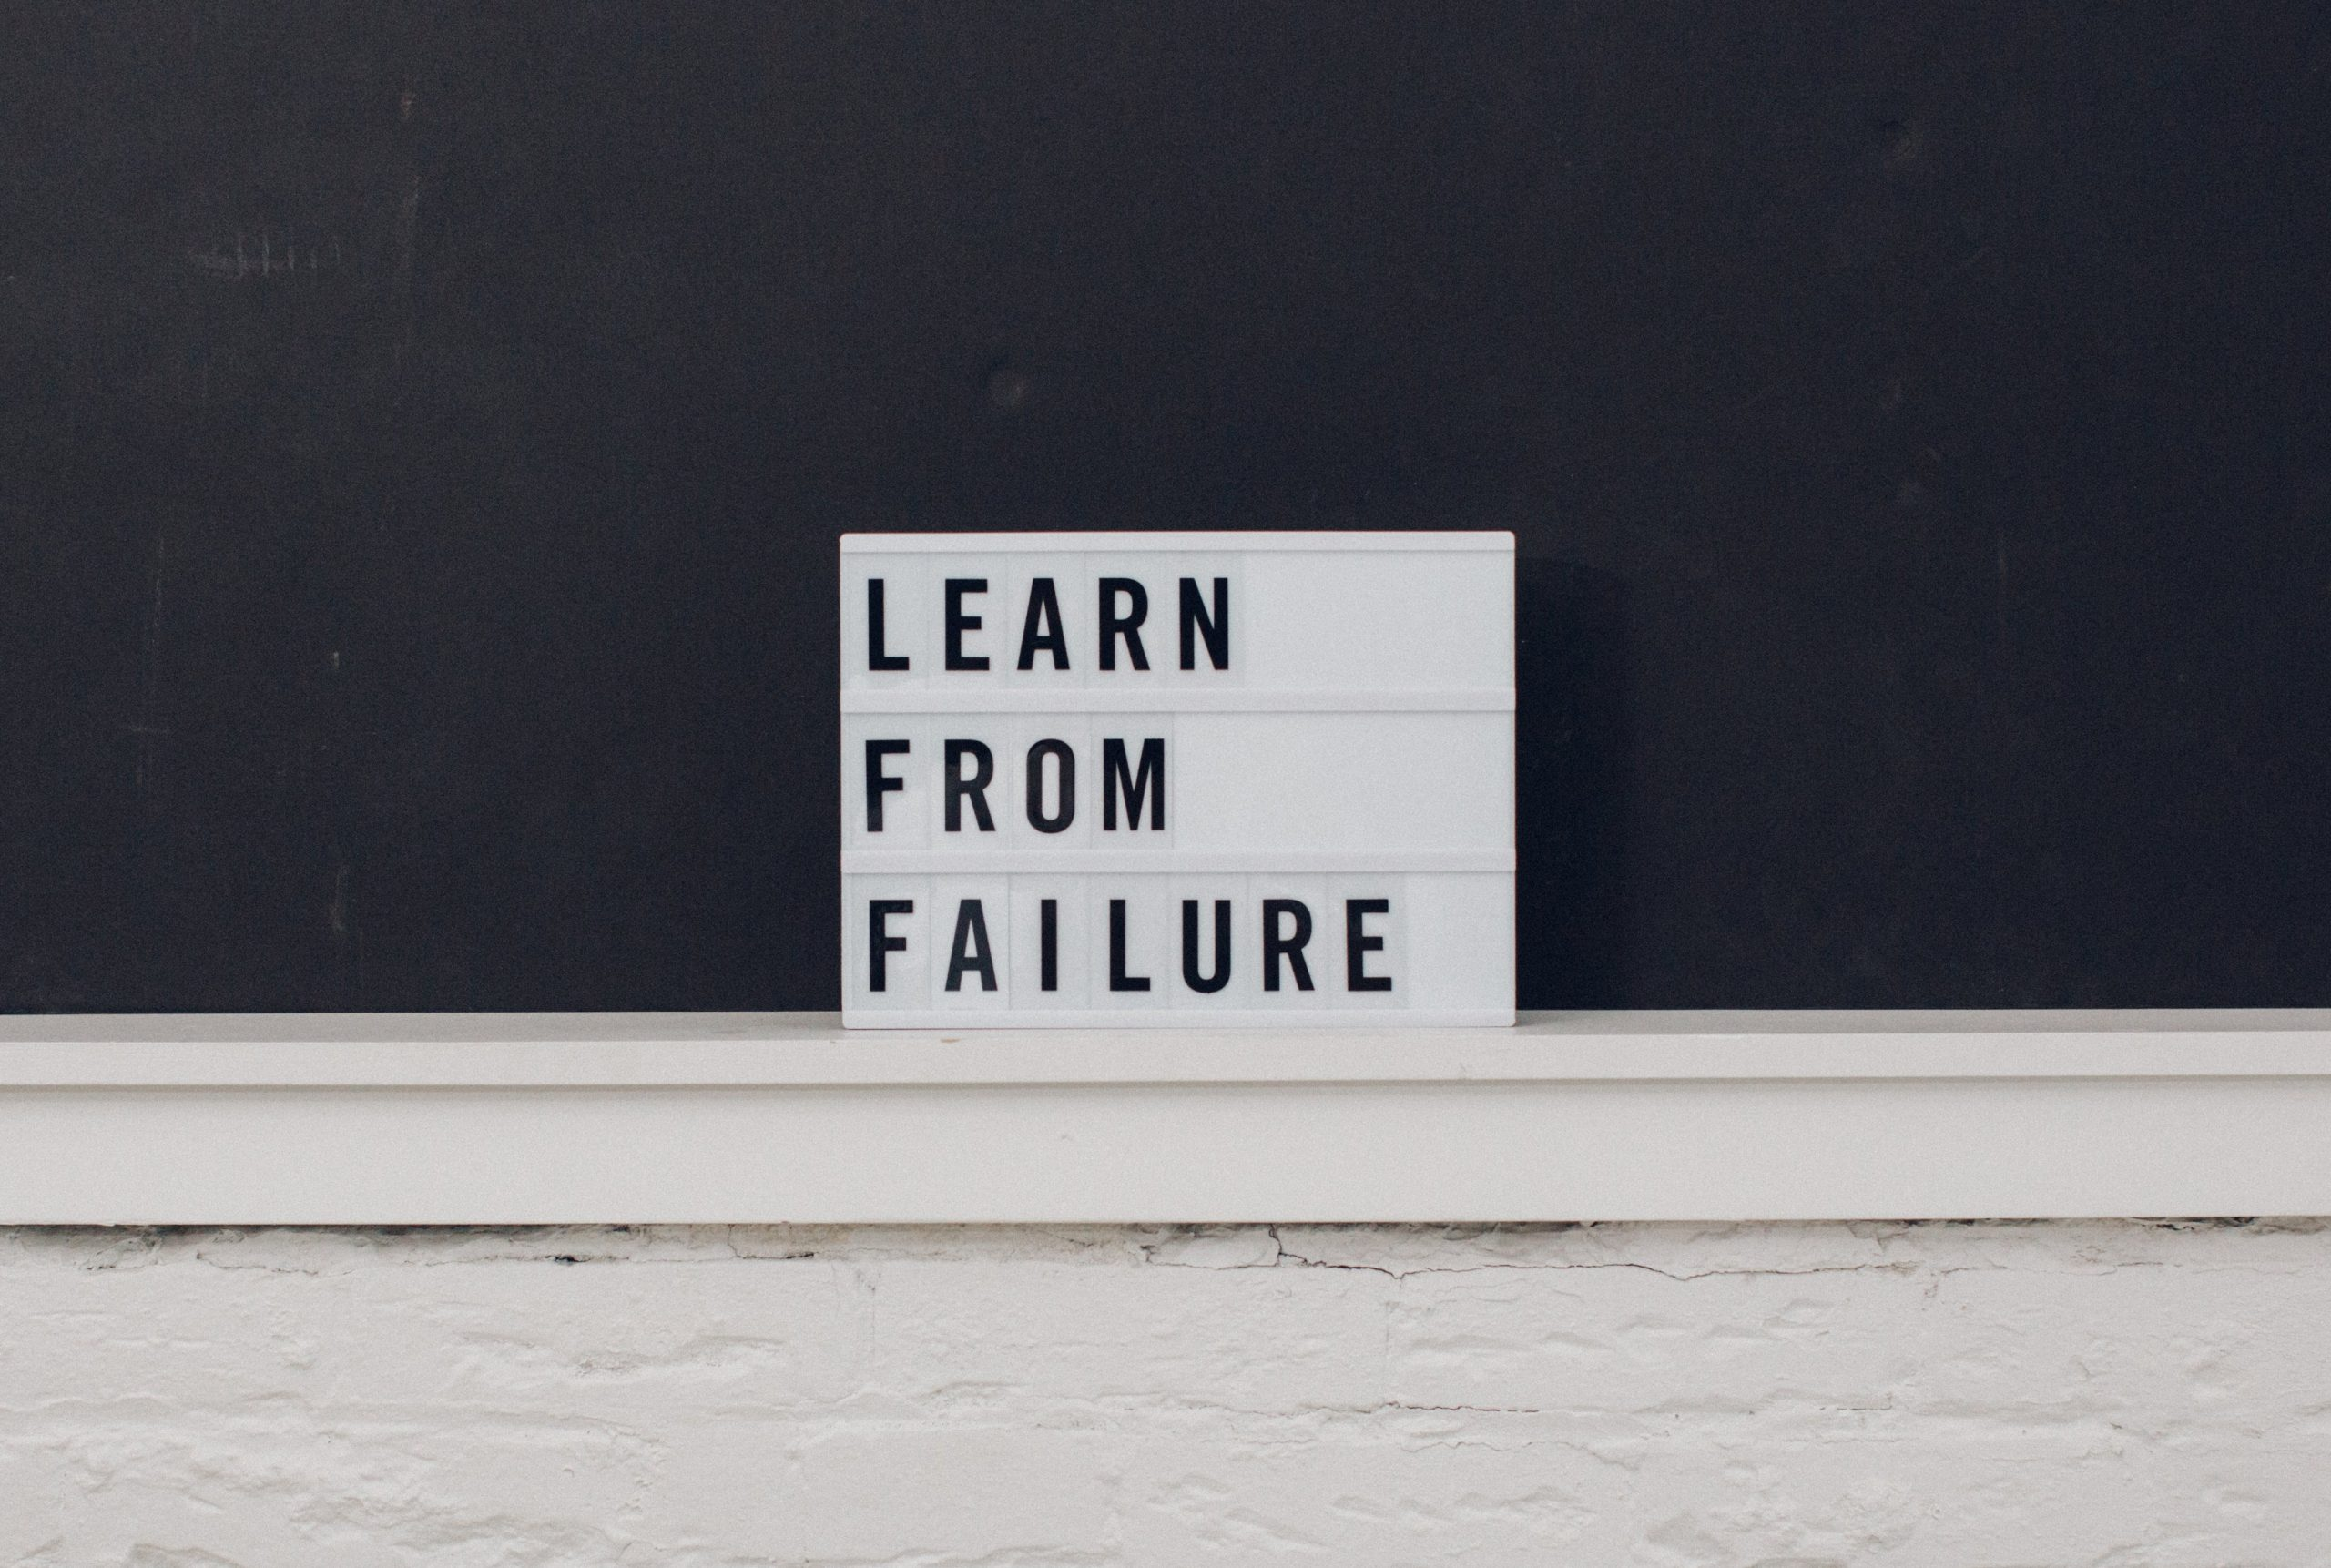 How To Deal With Professional Failure